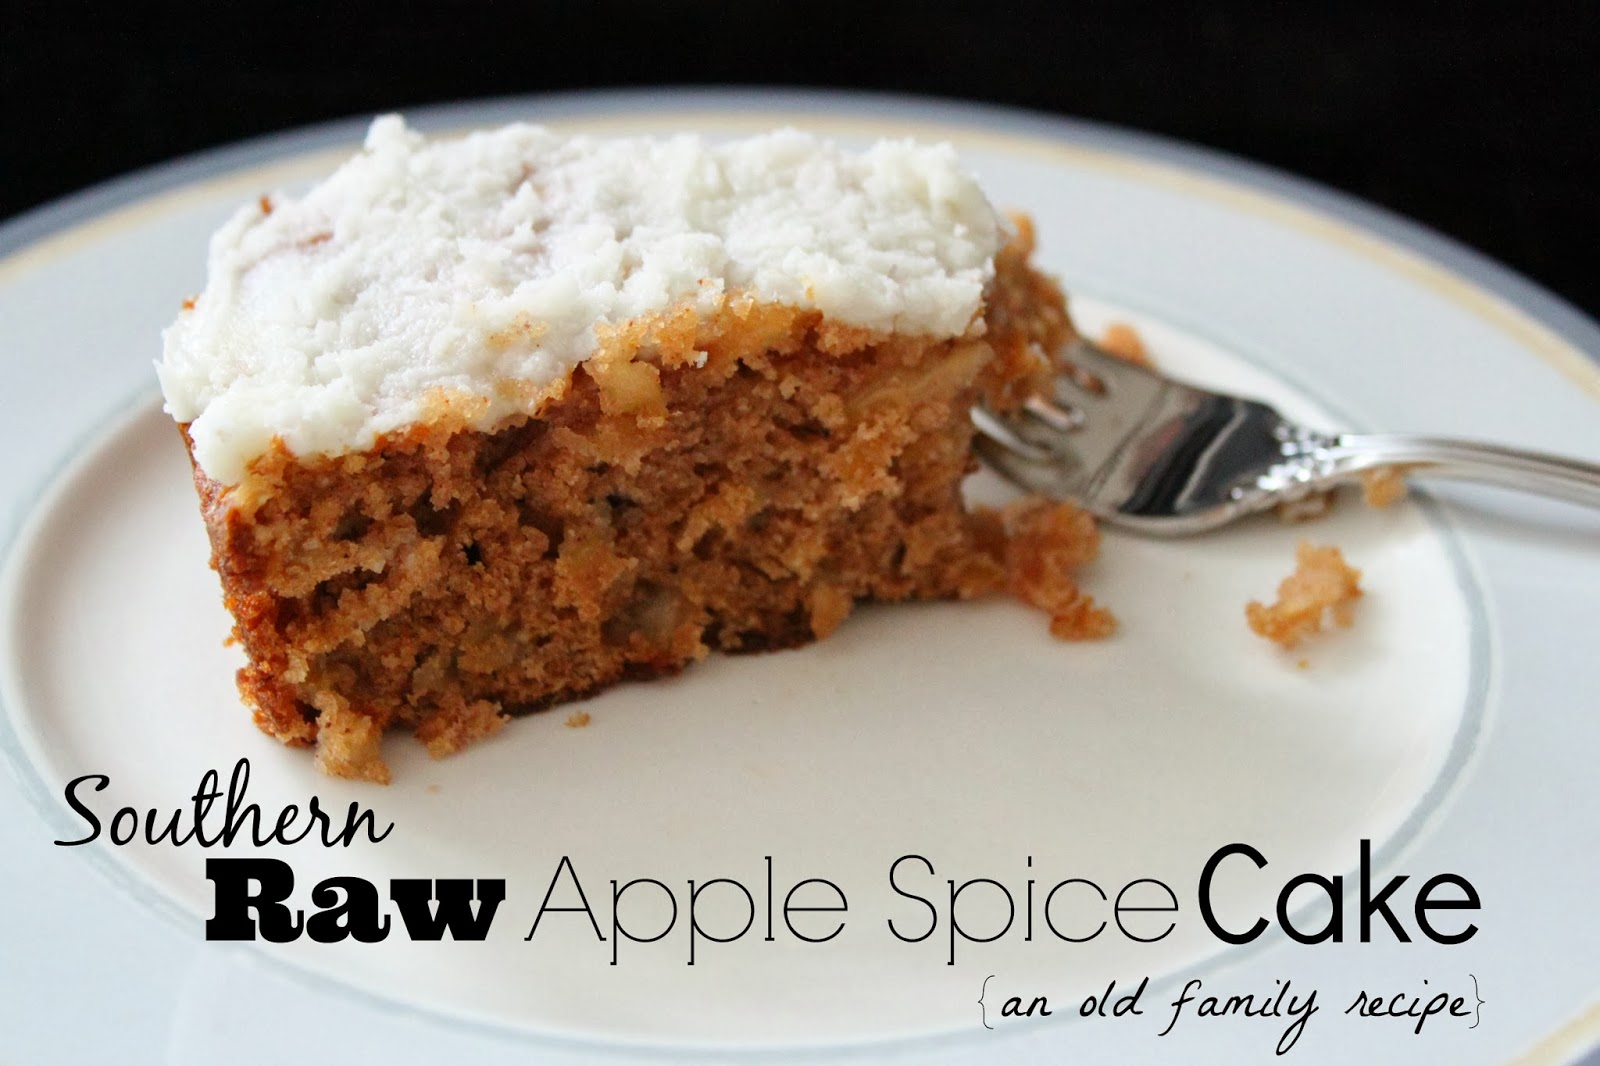 Sourthern Raw Apple Spice Cake